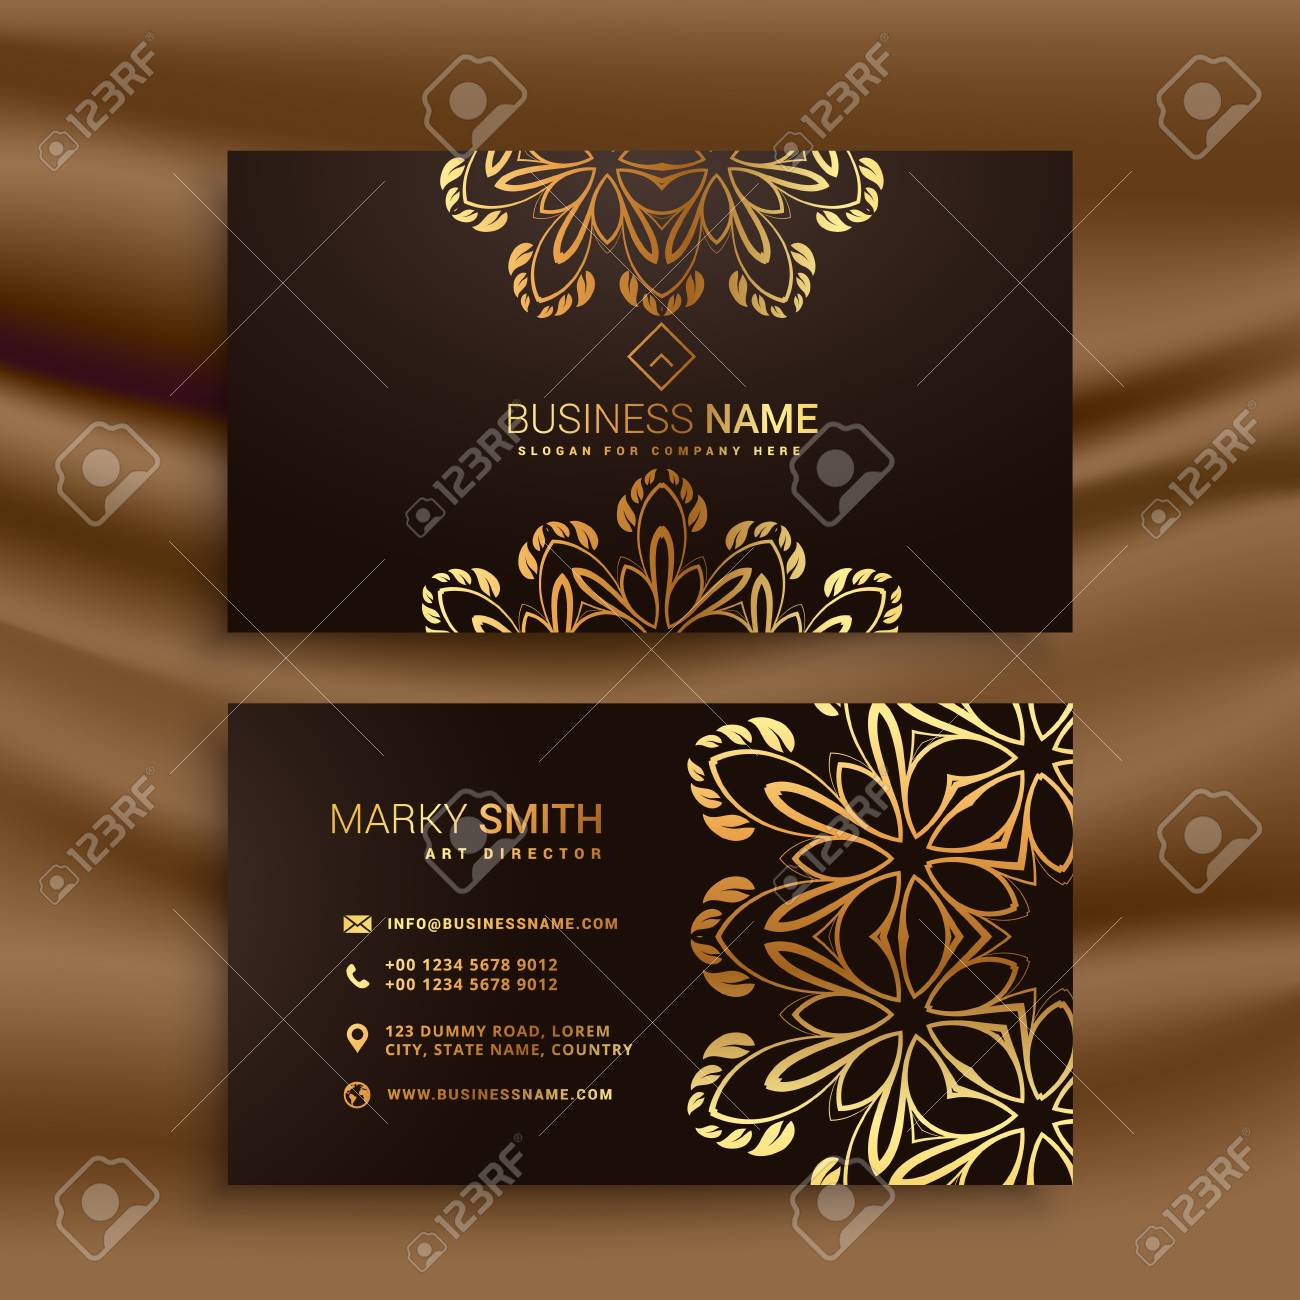 Premium luxury business card design with golden floral decoration premium luxury business card design with golden floral decoration stock vector 67407969 reheart Images